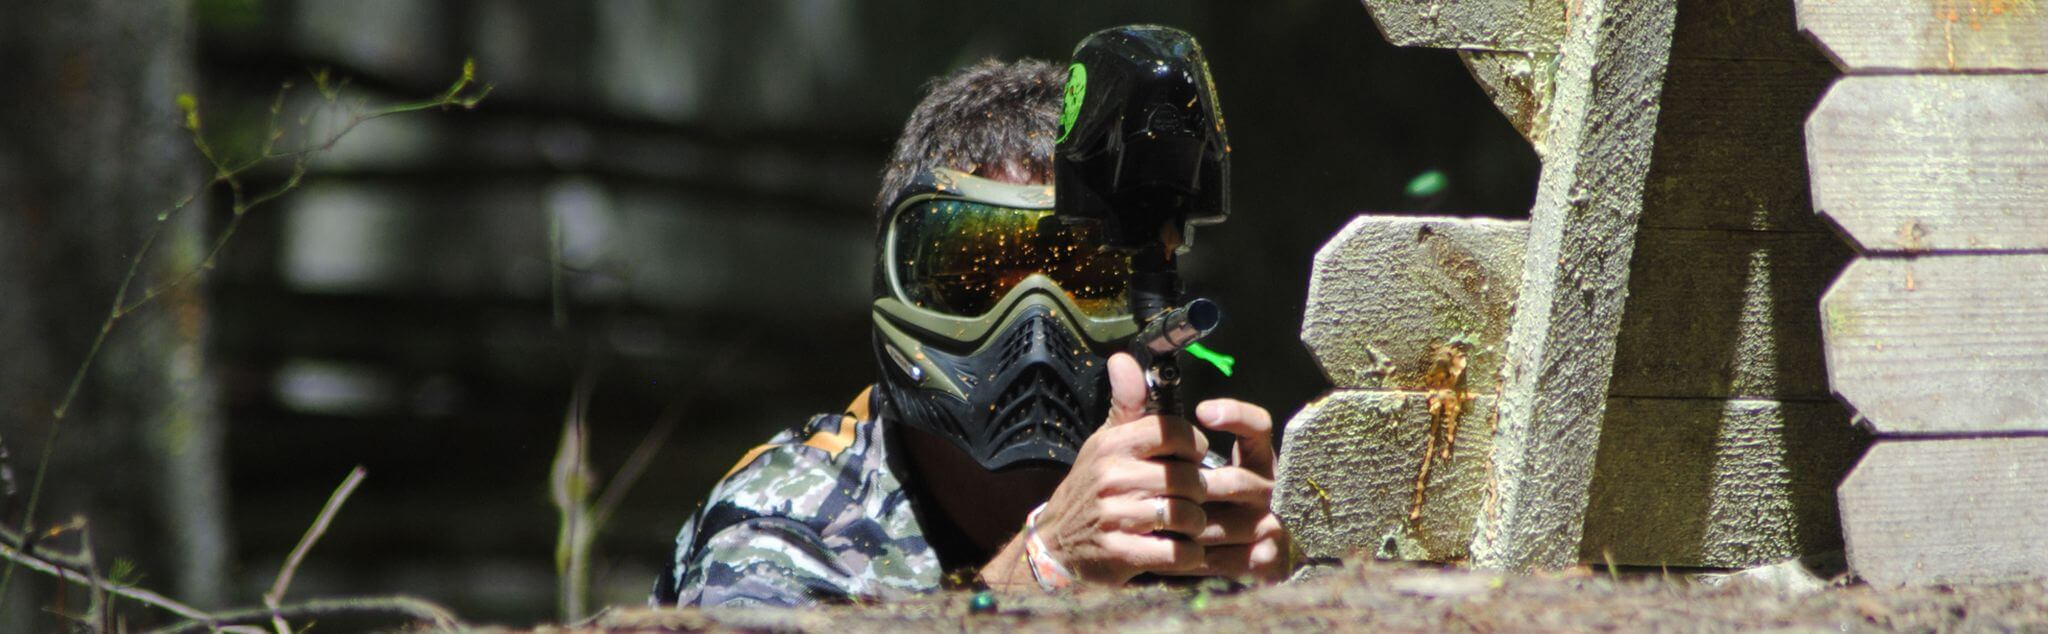 Paintball en La Vall D'uixó